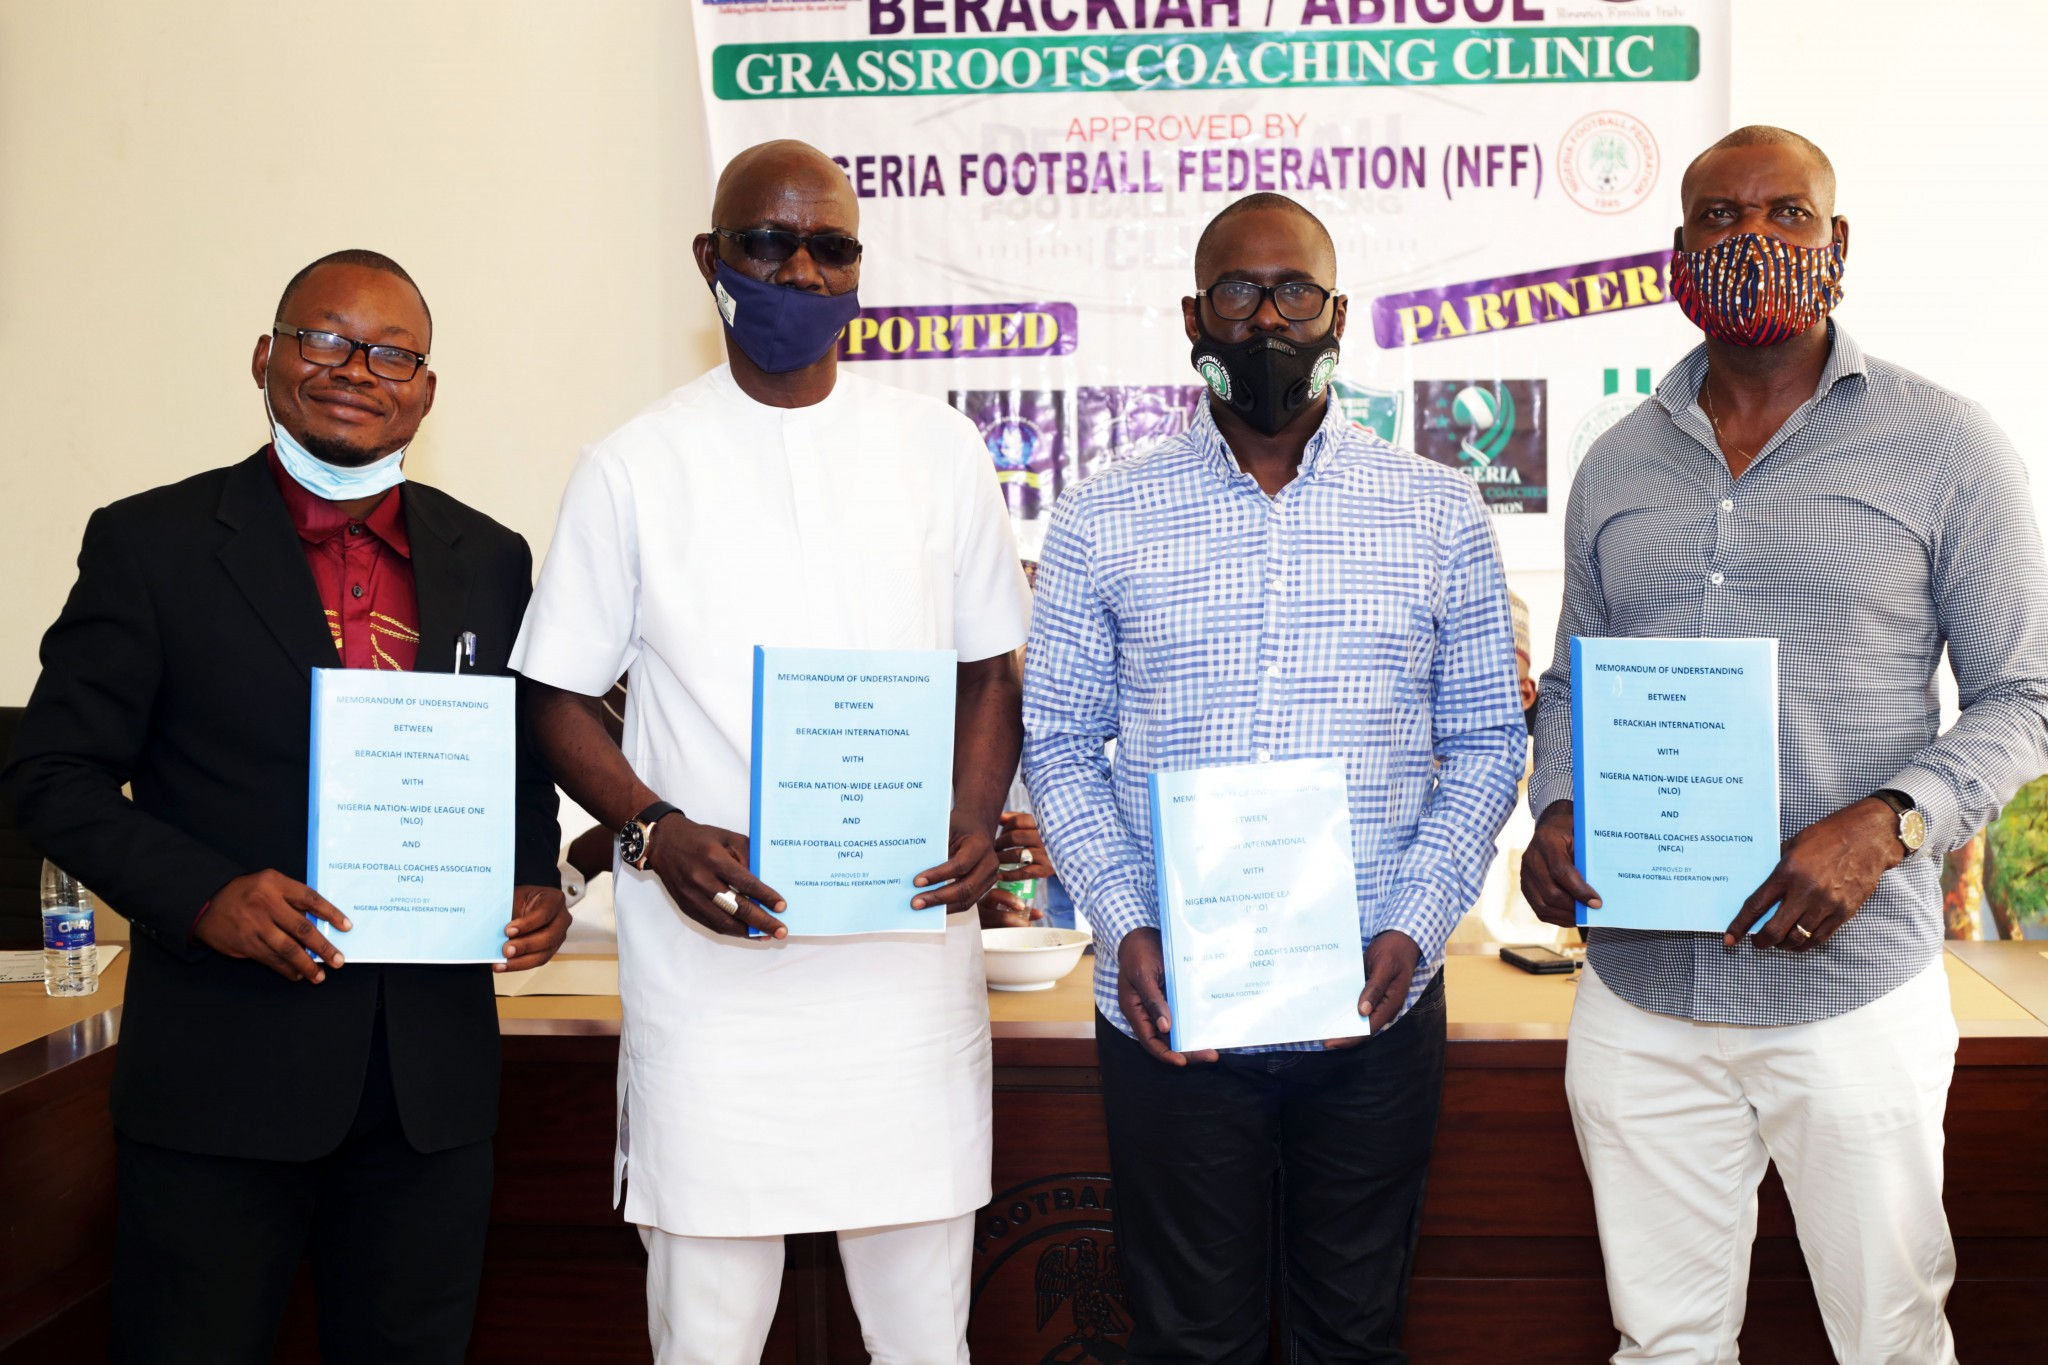 Grassroots Football: NLO signs MOU with Berackiah Football Coaching Clinic